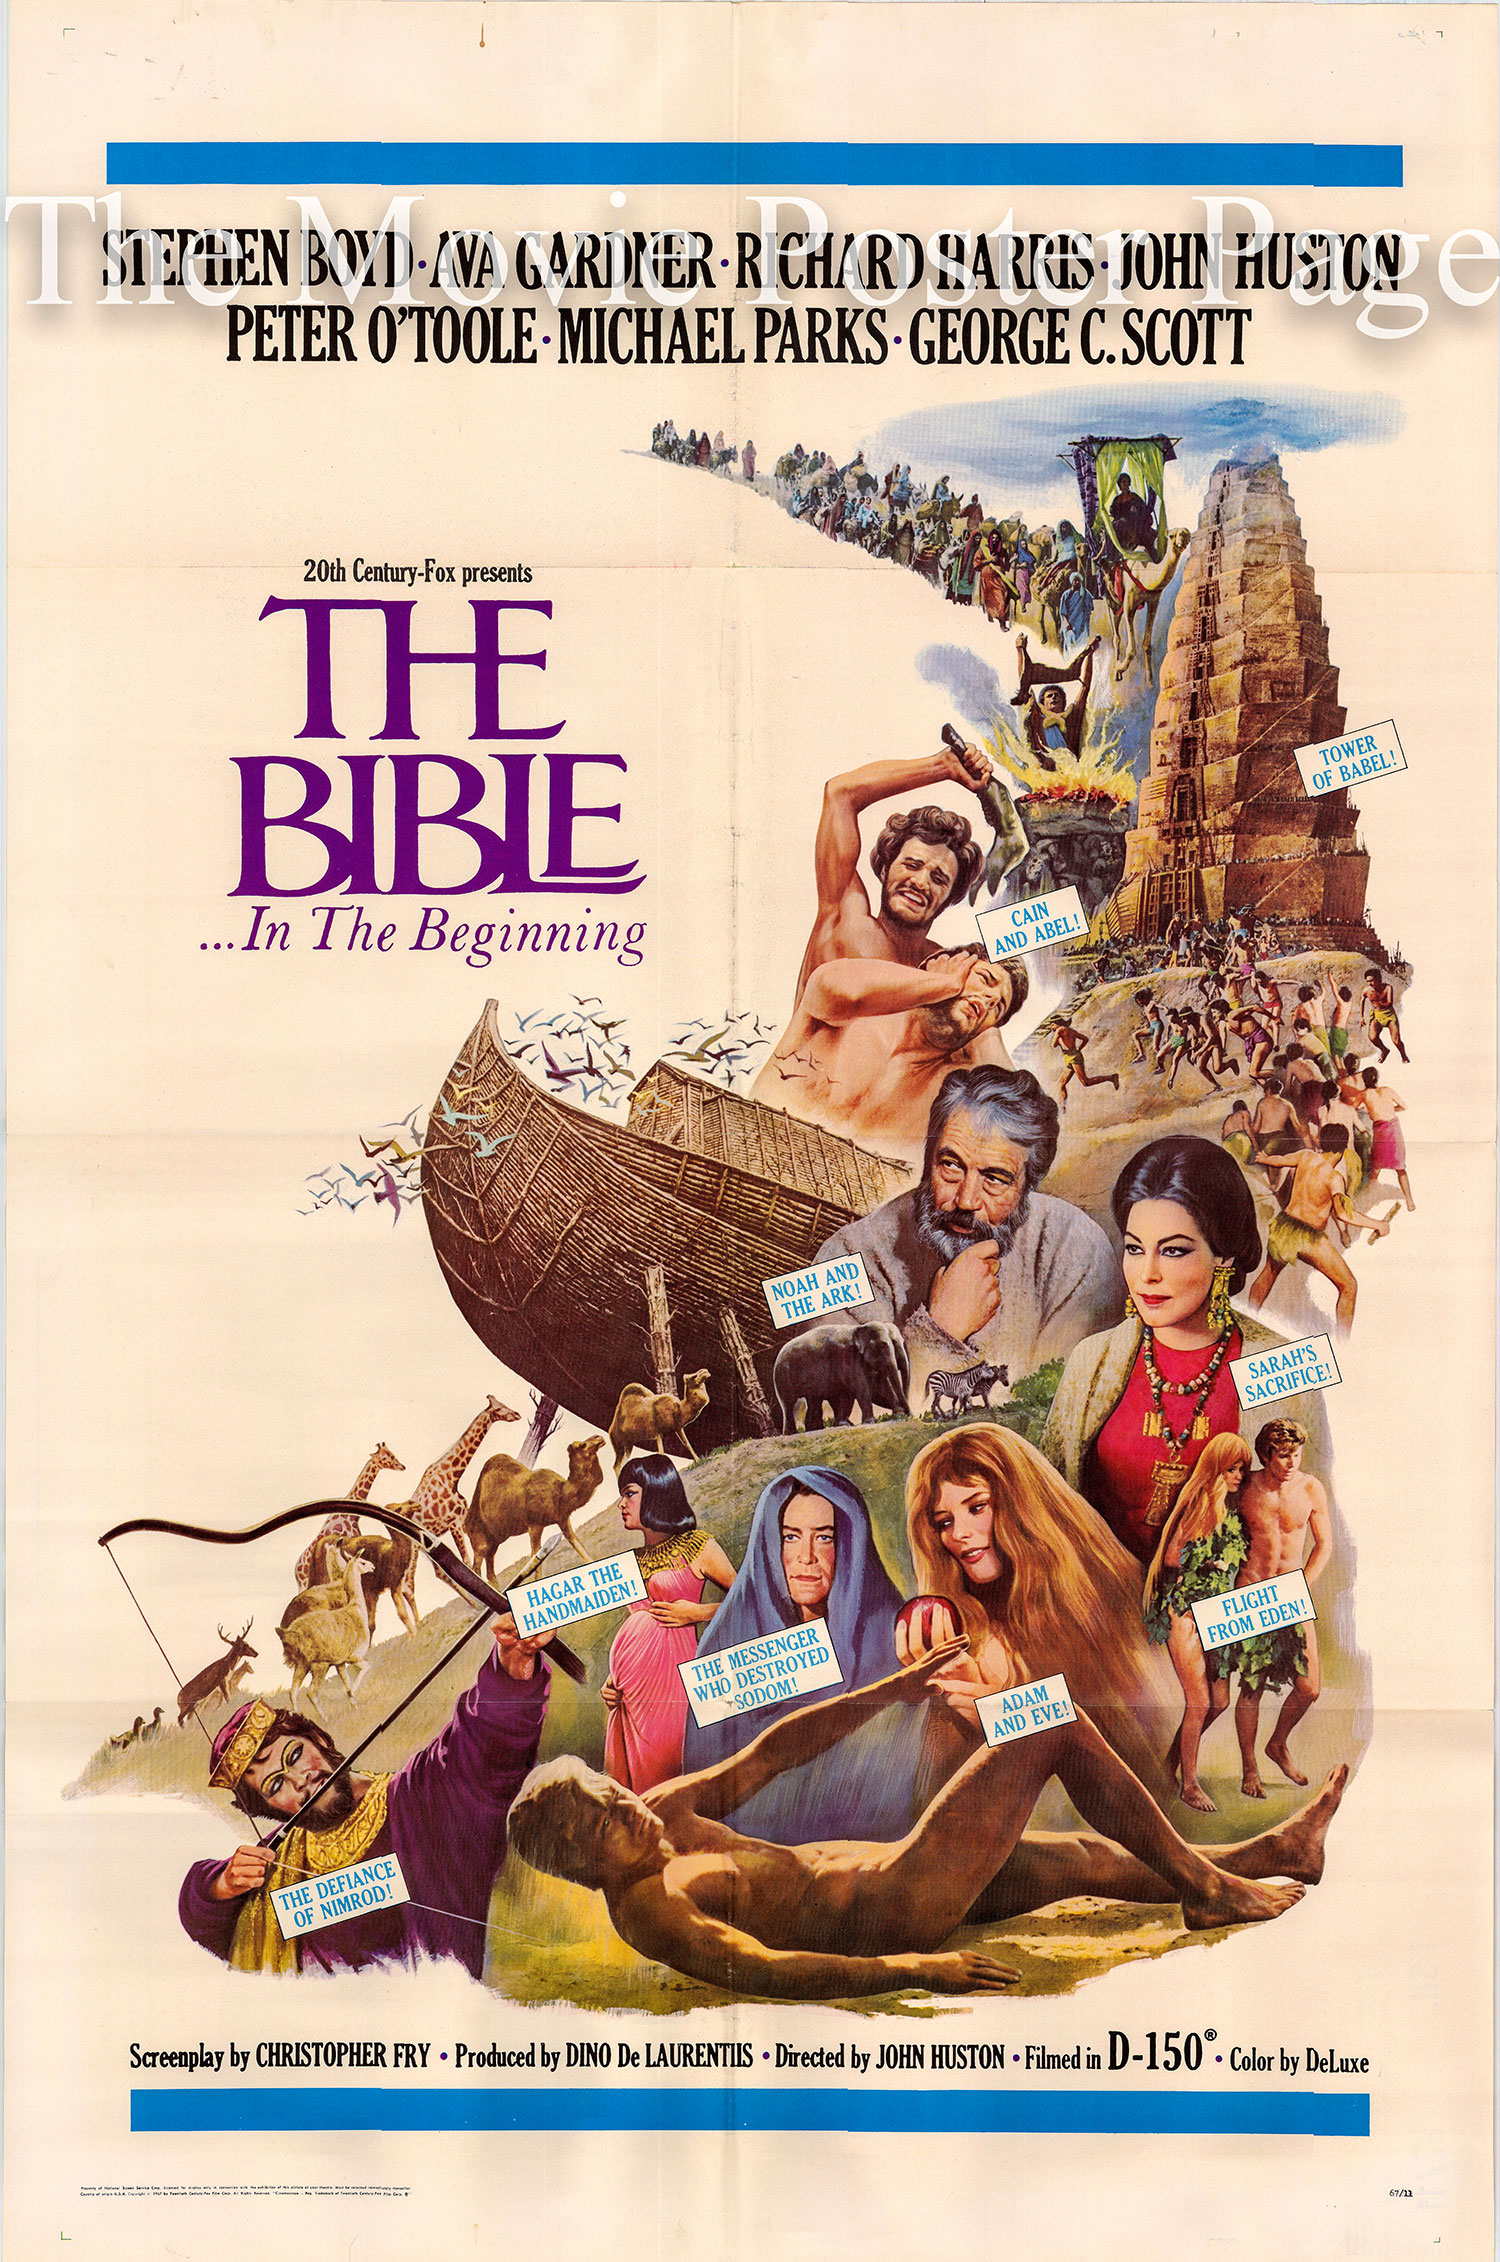 Pictured is a US one-sheet promotional poster for the 1967 John Huston film The Bible starring Michael Parks as Adam and Ulla Bergryd as Eve.